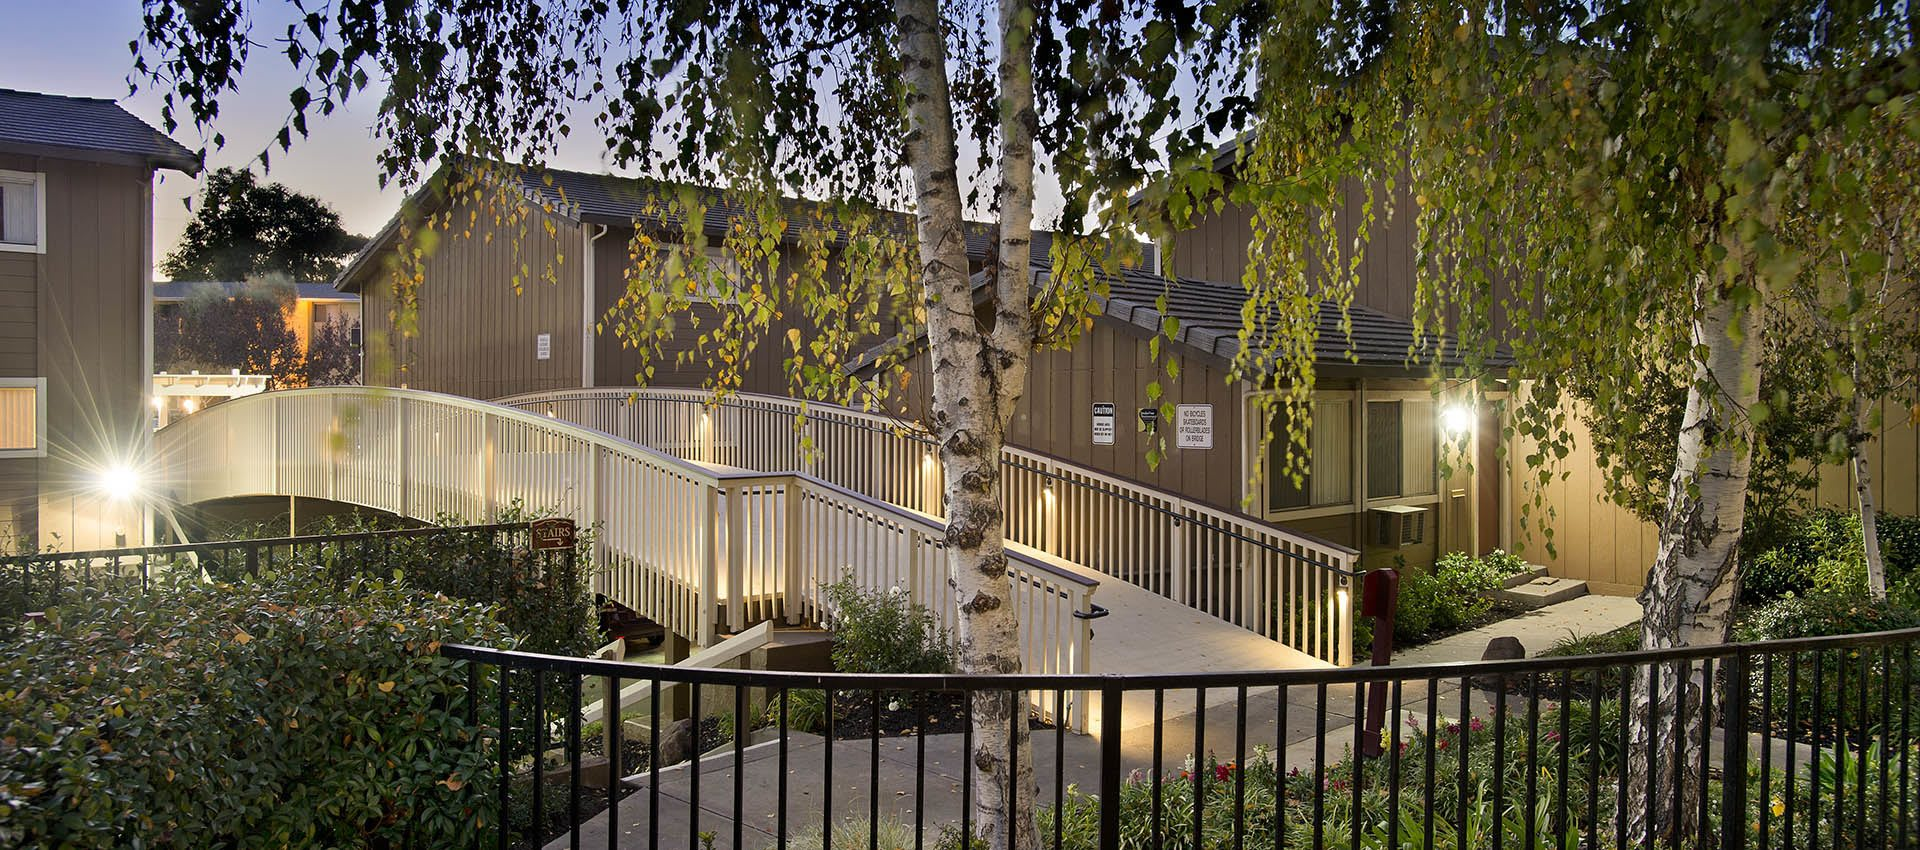 Exterior Or Apartments With Bridge at Shadow Oaks Apartment Homes in Cupertino